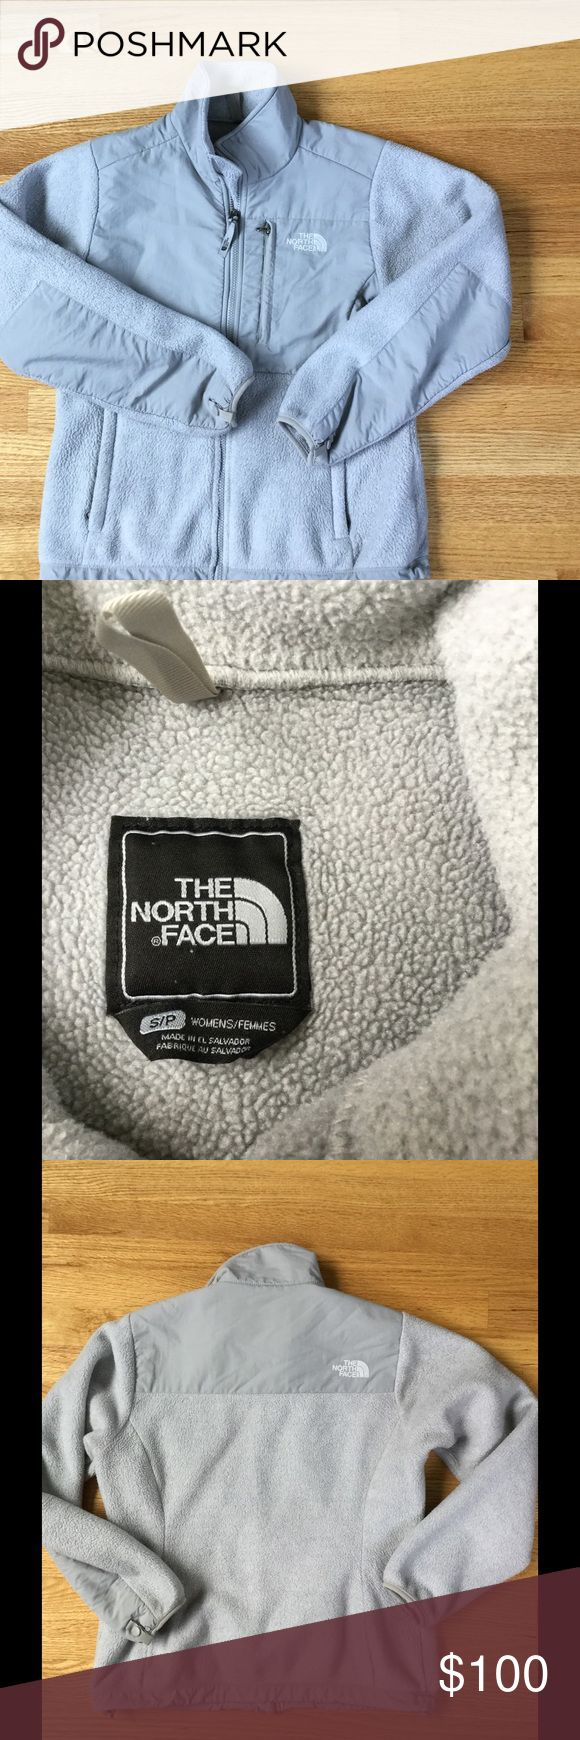 North Face Women's Gray Fleece Jacket EUC Size small. Pilling on fleece pictured from normal wear.⭐️Make an offer using the offer button or take advantage of my bundle discount! Trades North Face Jackets & Coats